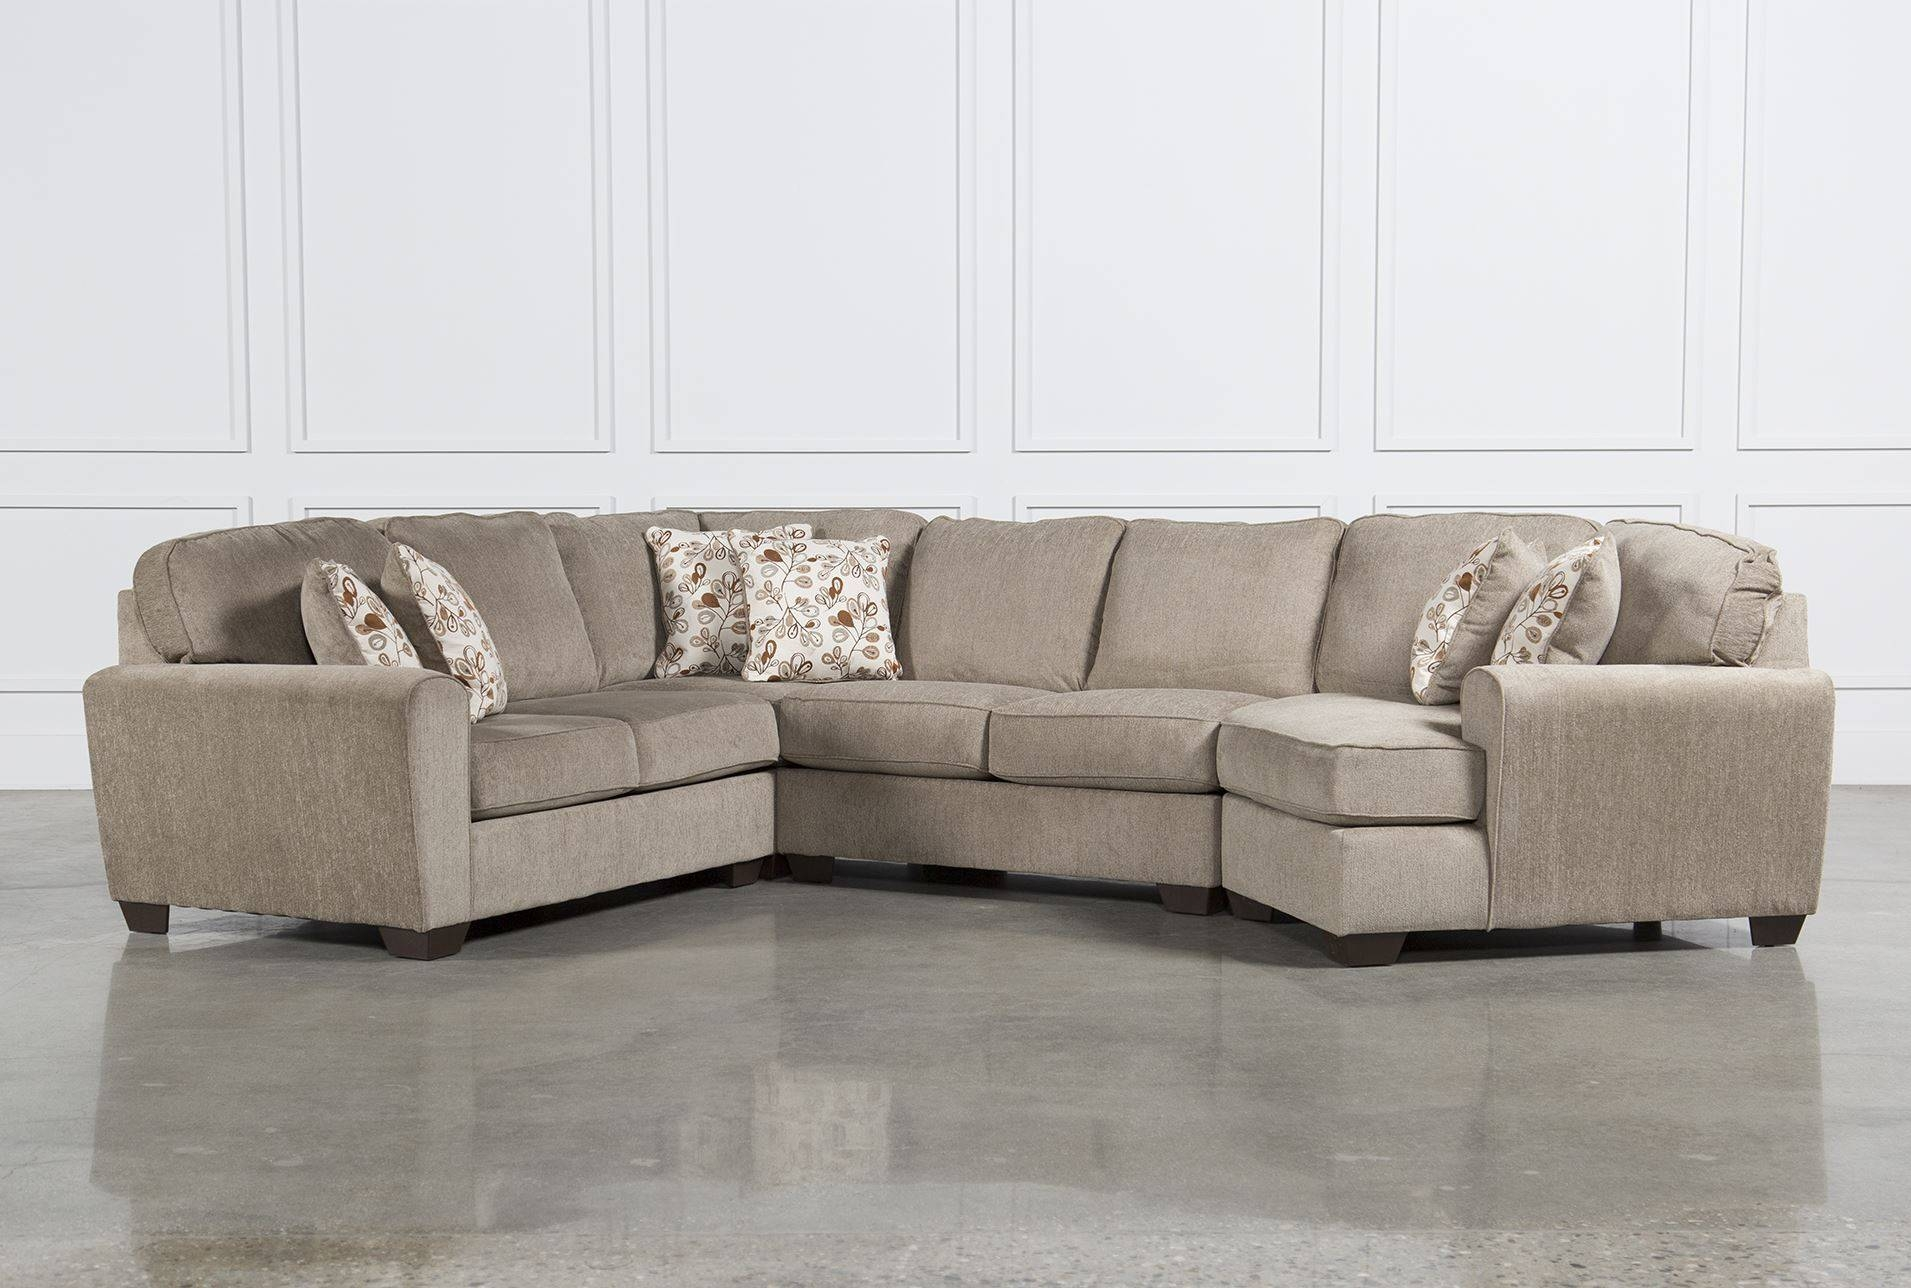 Latest Trend Of Sectional Sofa With Cuddler Chaise 81 In Eco intended for Eco Friendly Sectional Sofa (Image 22 of 30)